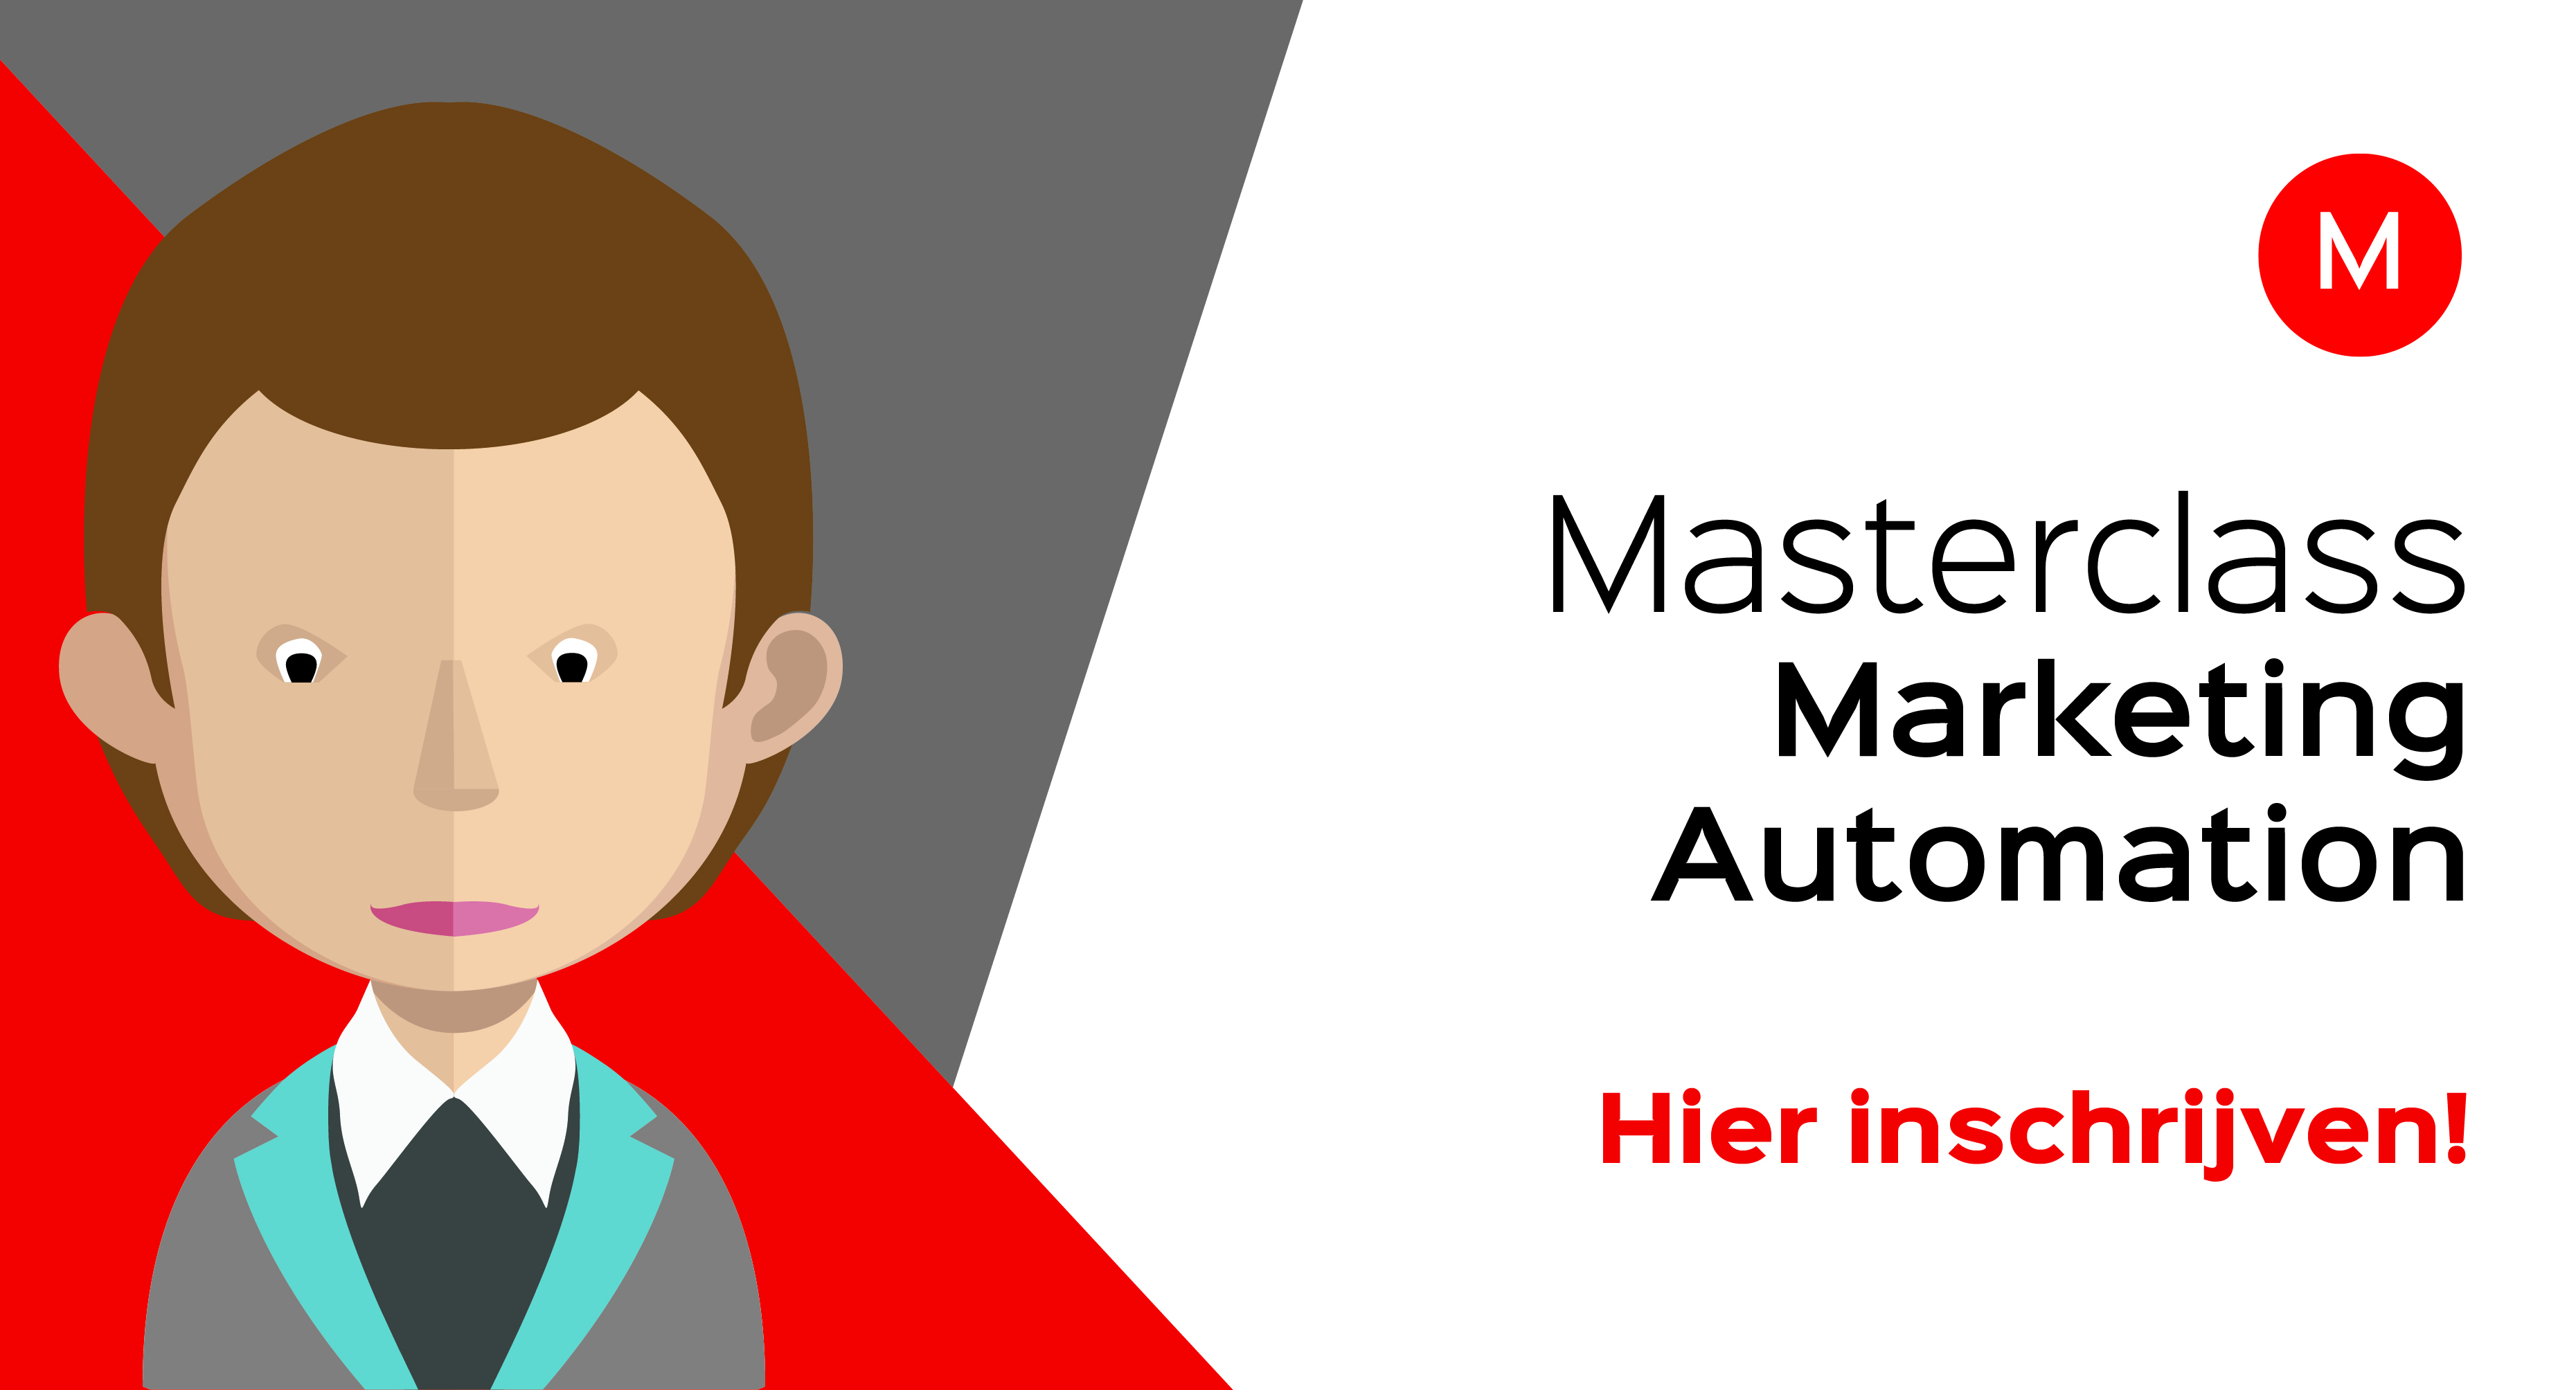 Marketing automation masterclass